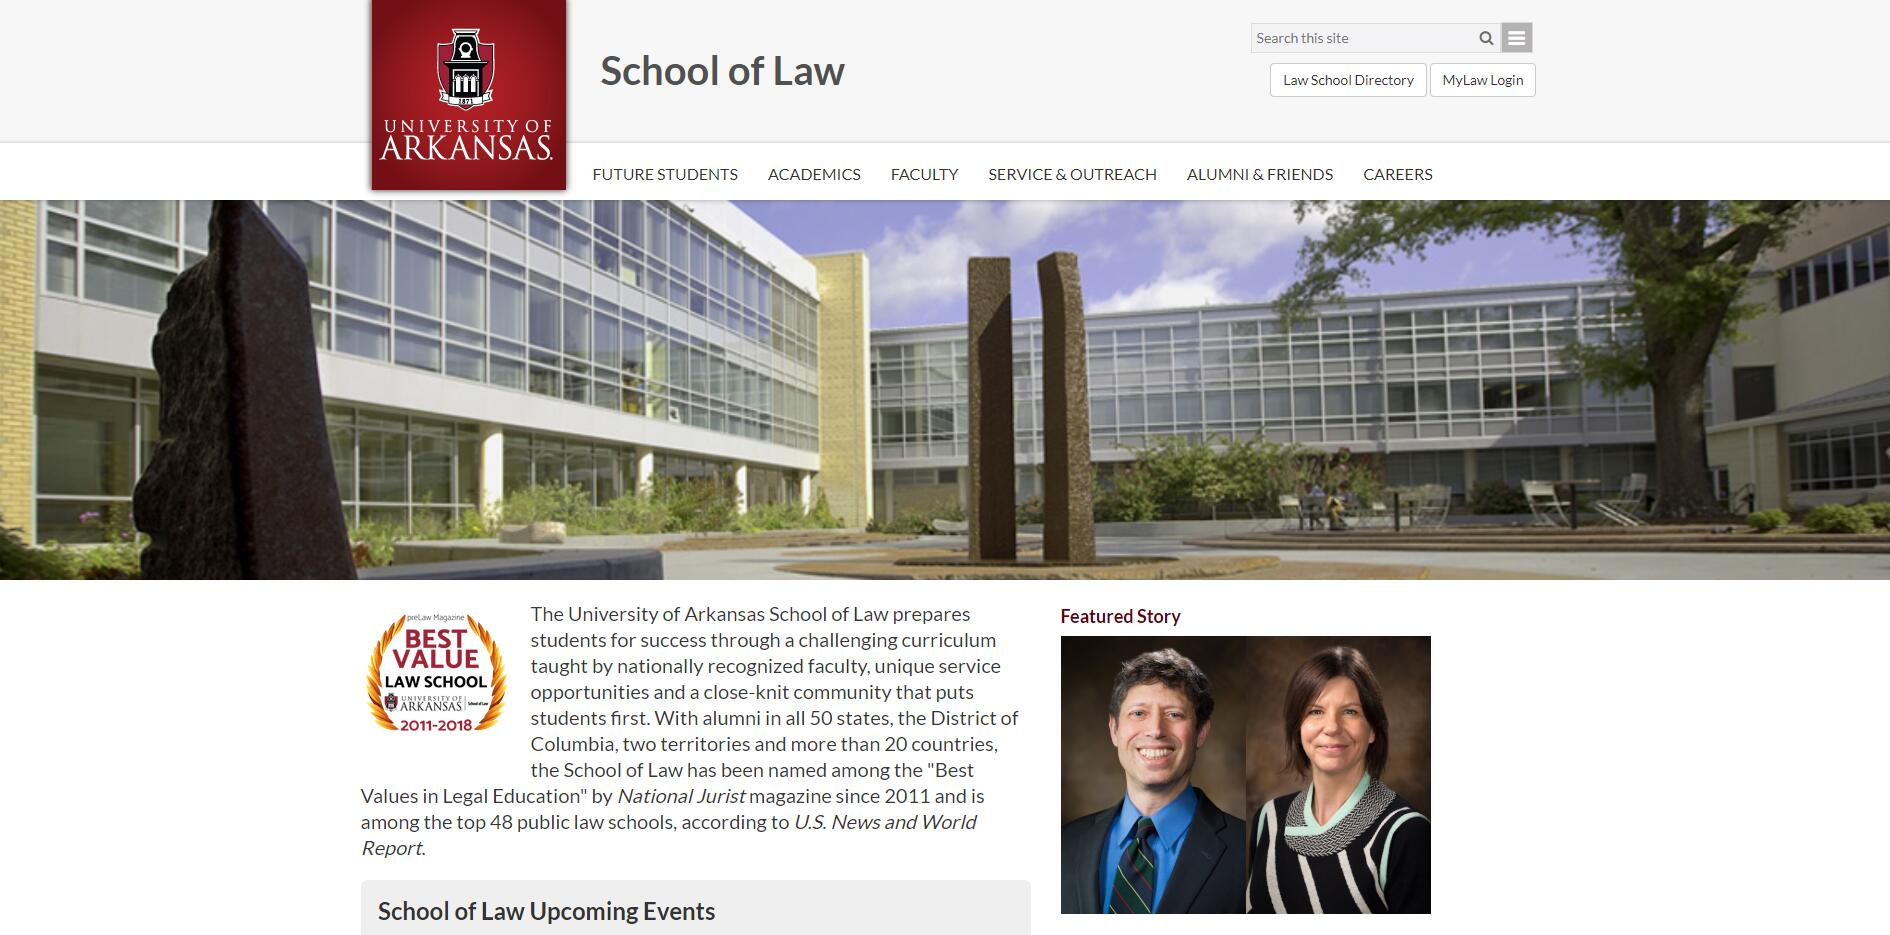 The School of Law at University of Arkansas